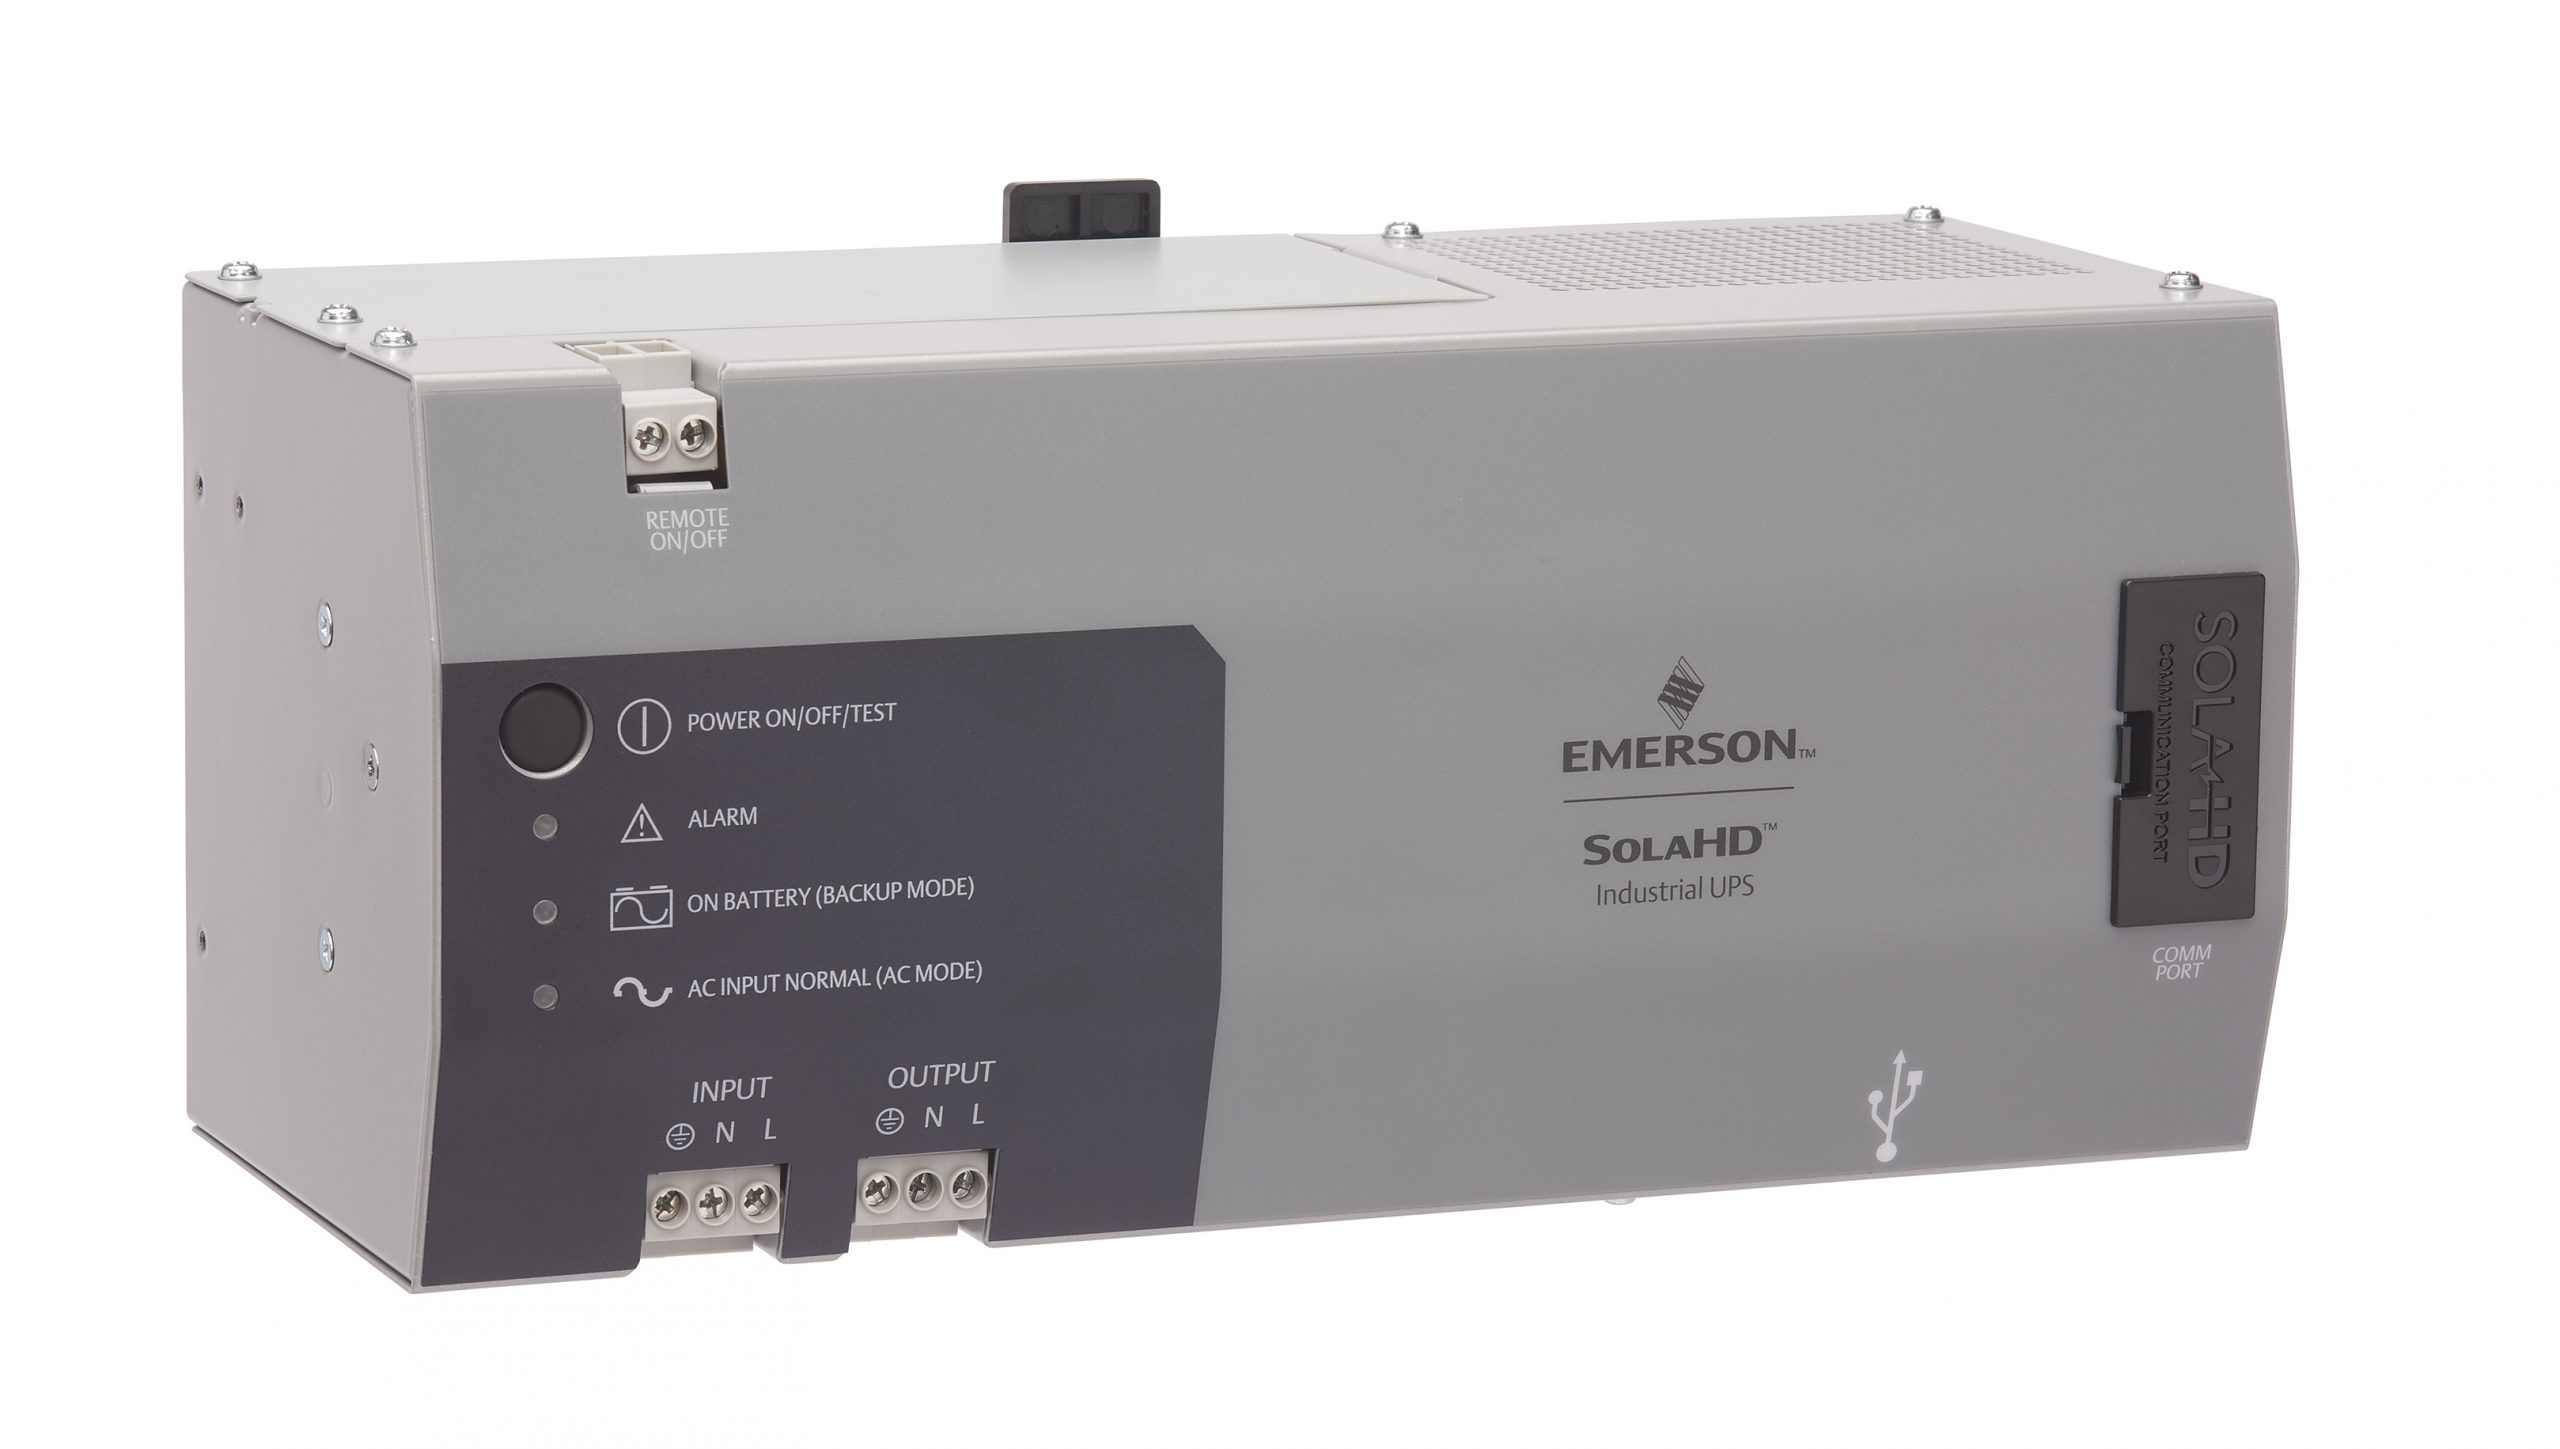 Emerson Uninterrupted Power Supply Maximizes Machine Availability and Minimizes Unplanned Disruptions in Harsh, High Temperature Industrial Environments